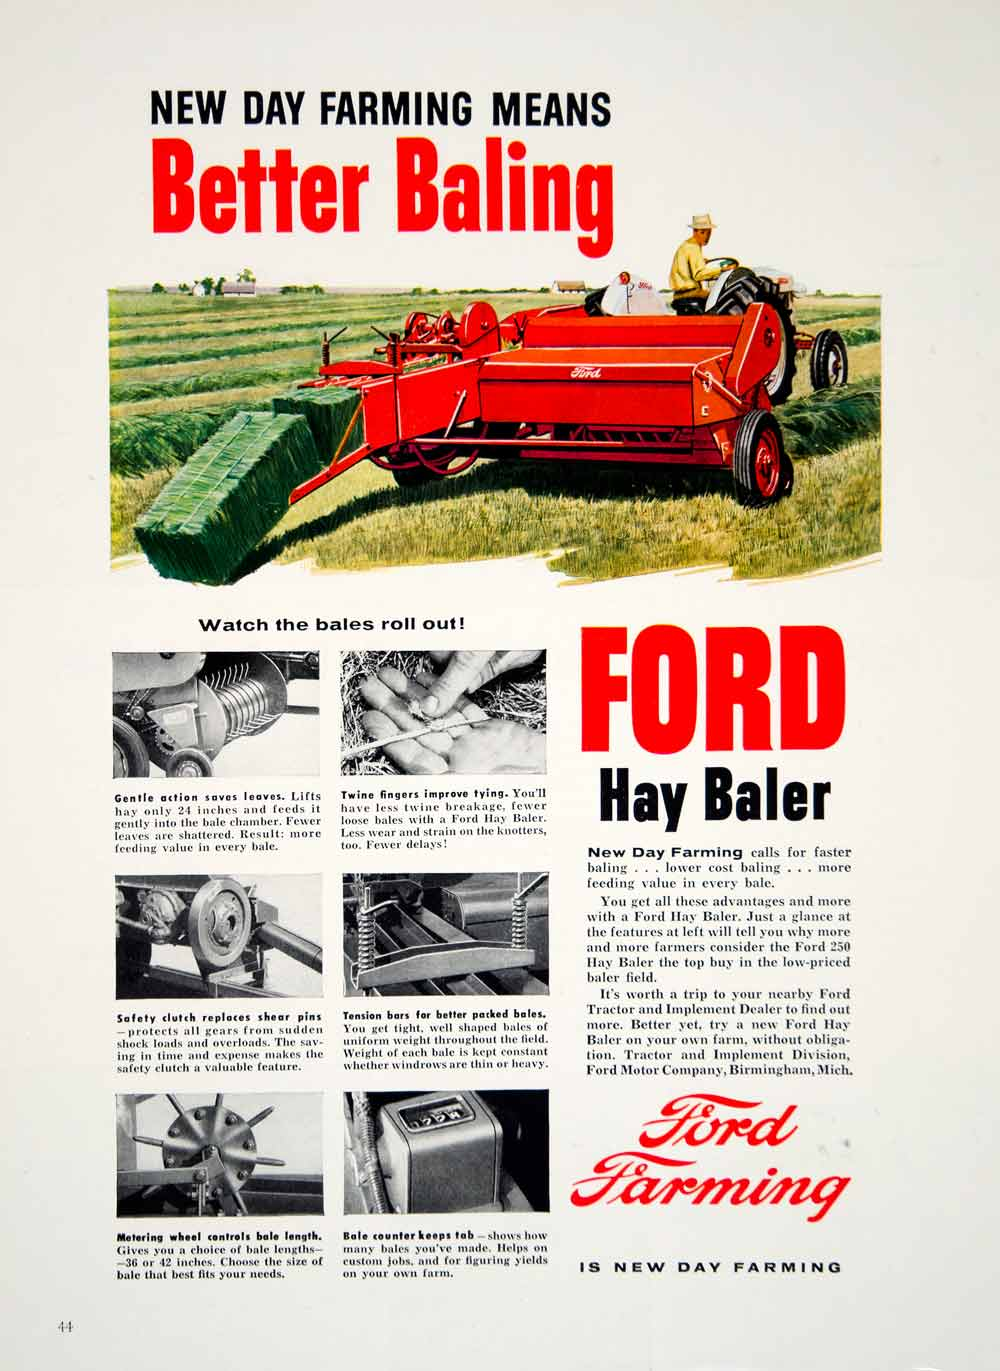 1956 Ad Ford Hay Baler Twine Maker Farming Implement Machinery Equipment  YFQ1